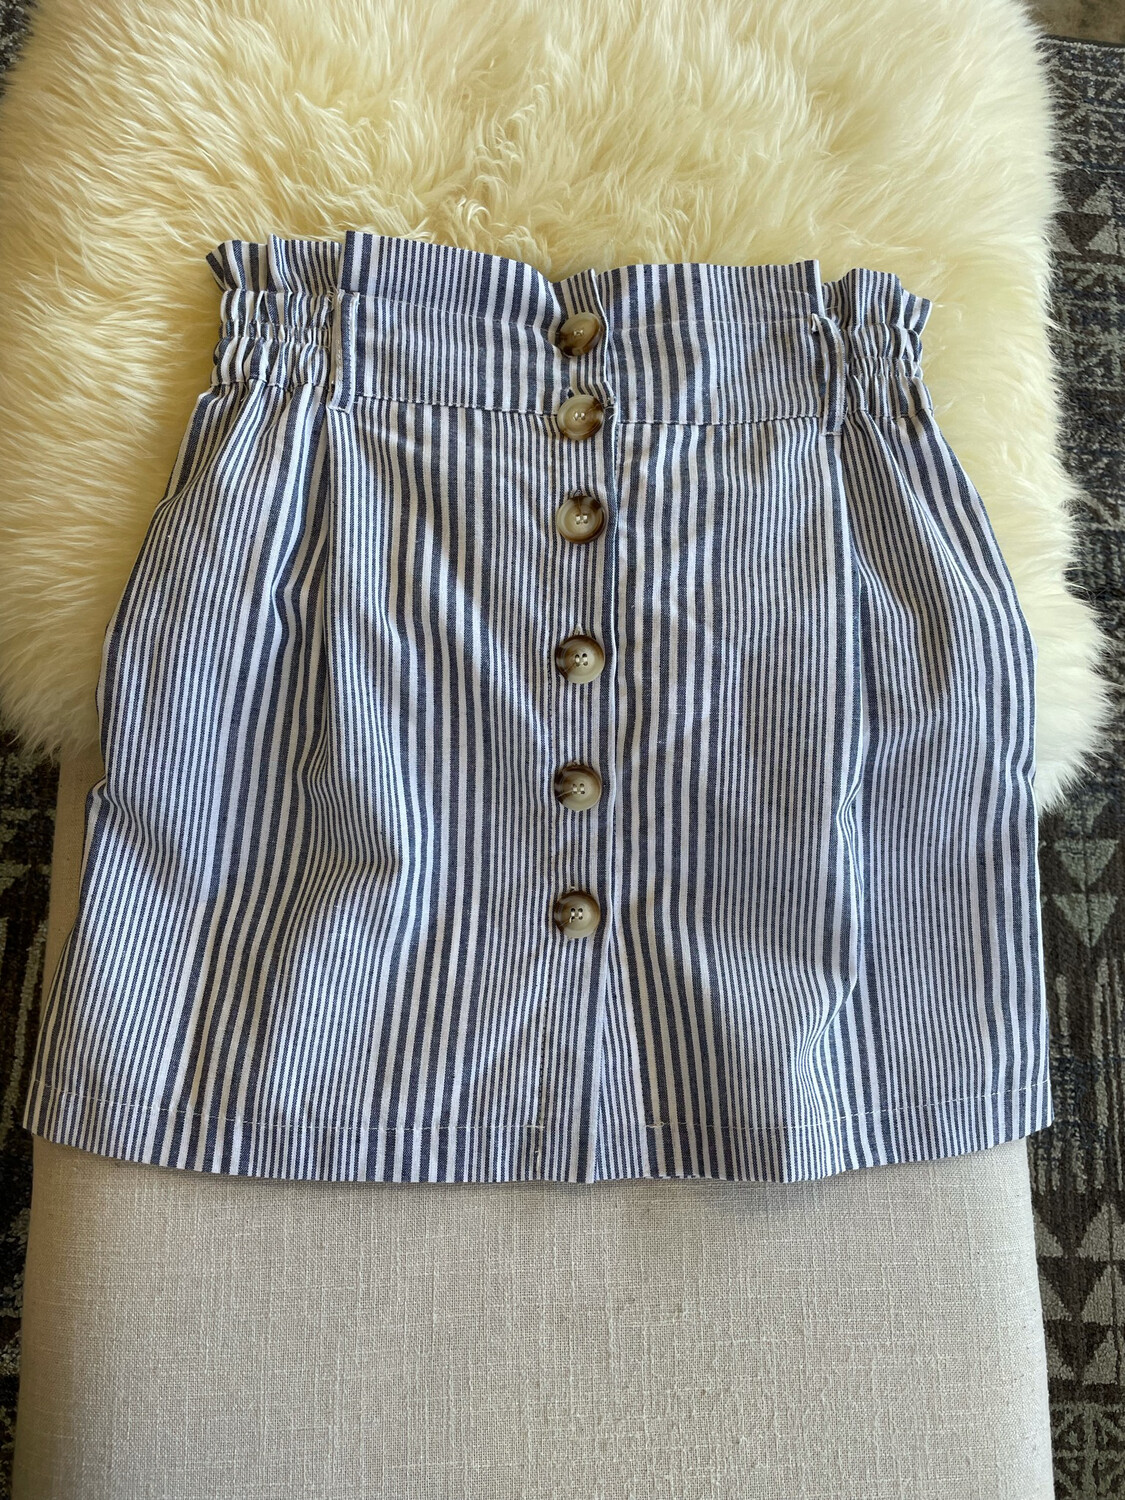 Favlux Navy & White Striped Skirt w/Buttons - M